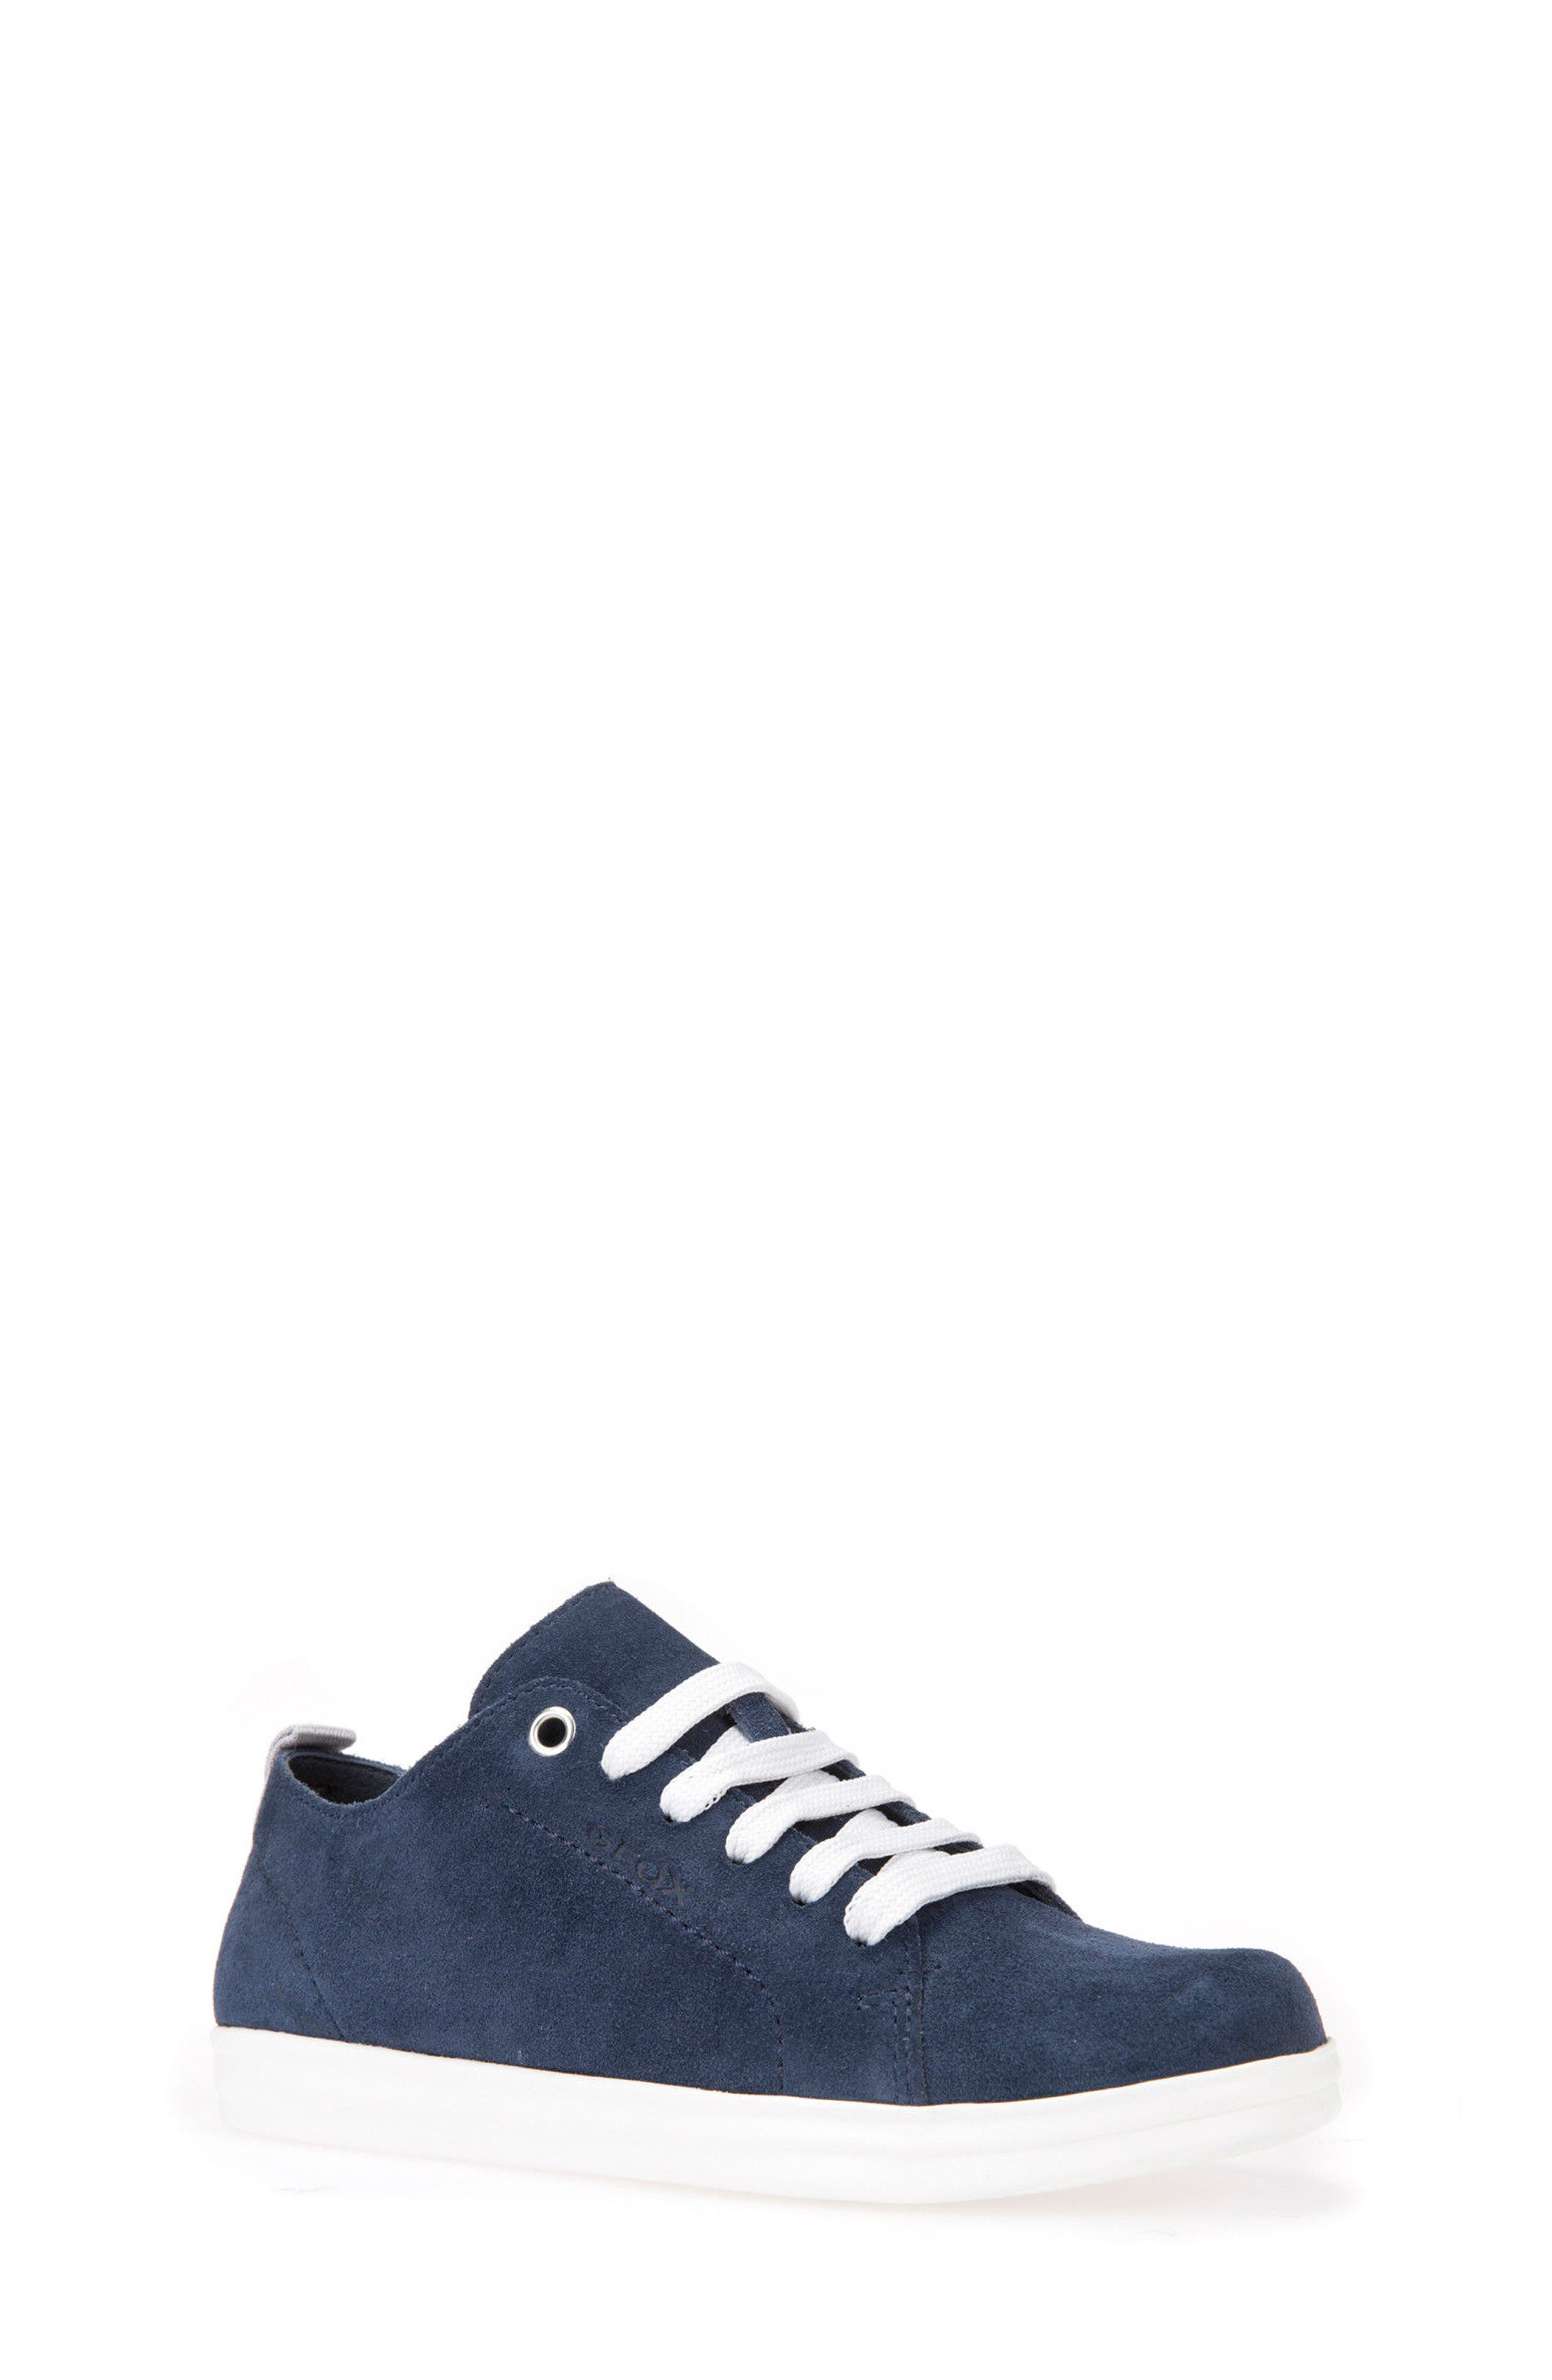 Boys Geox Anthor Low Top Sneaker Size 7US  41EU  Blue